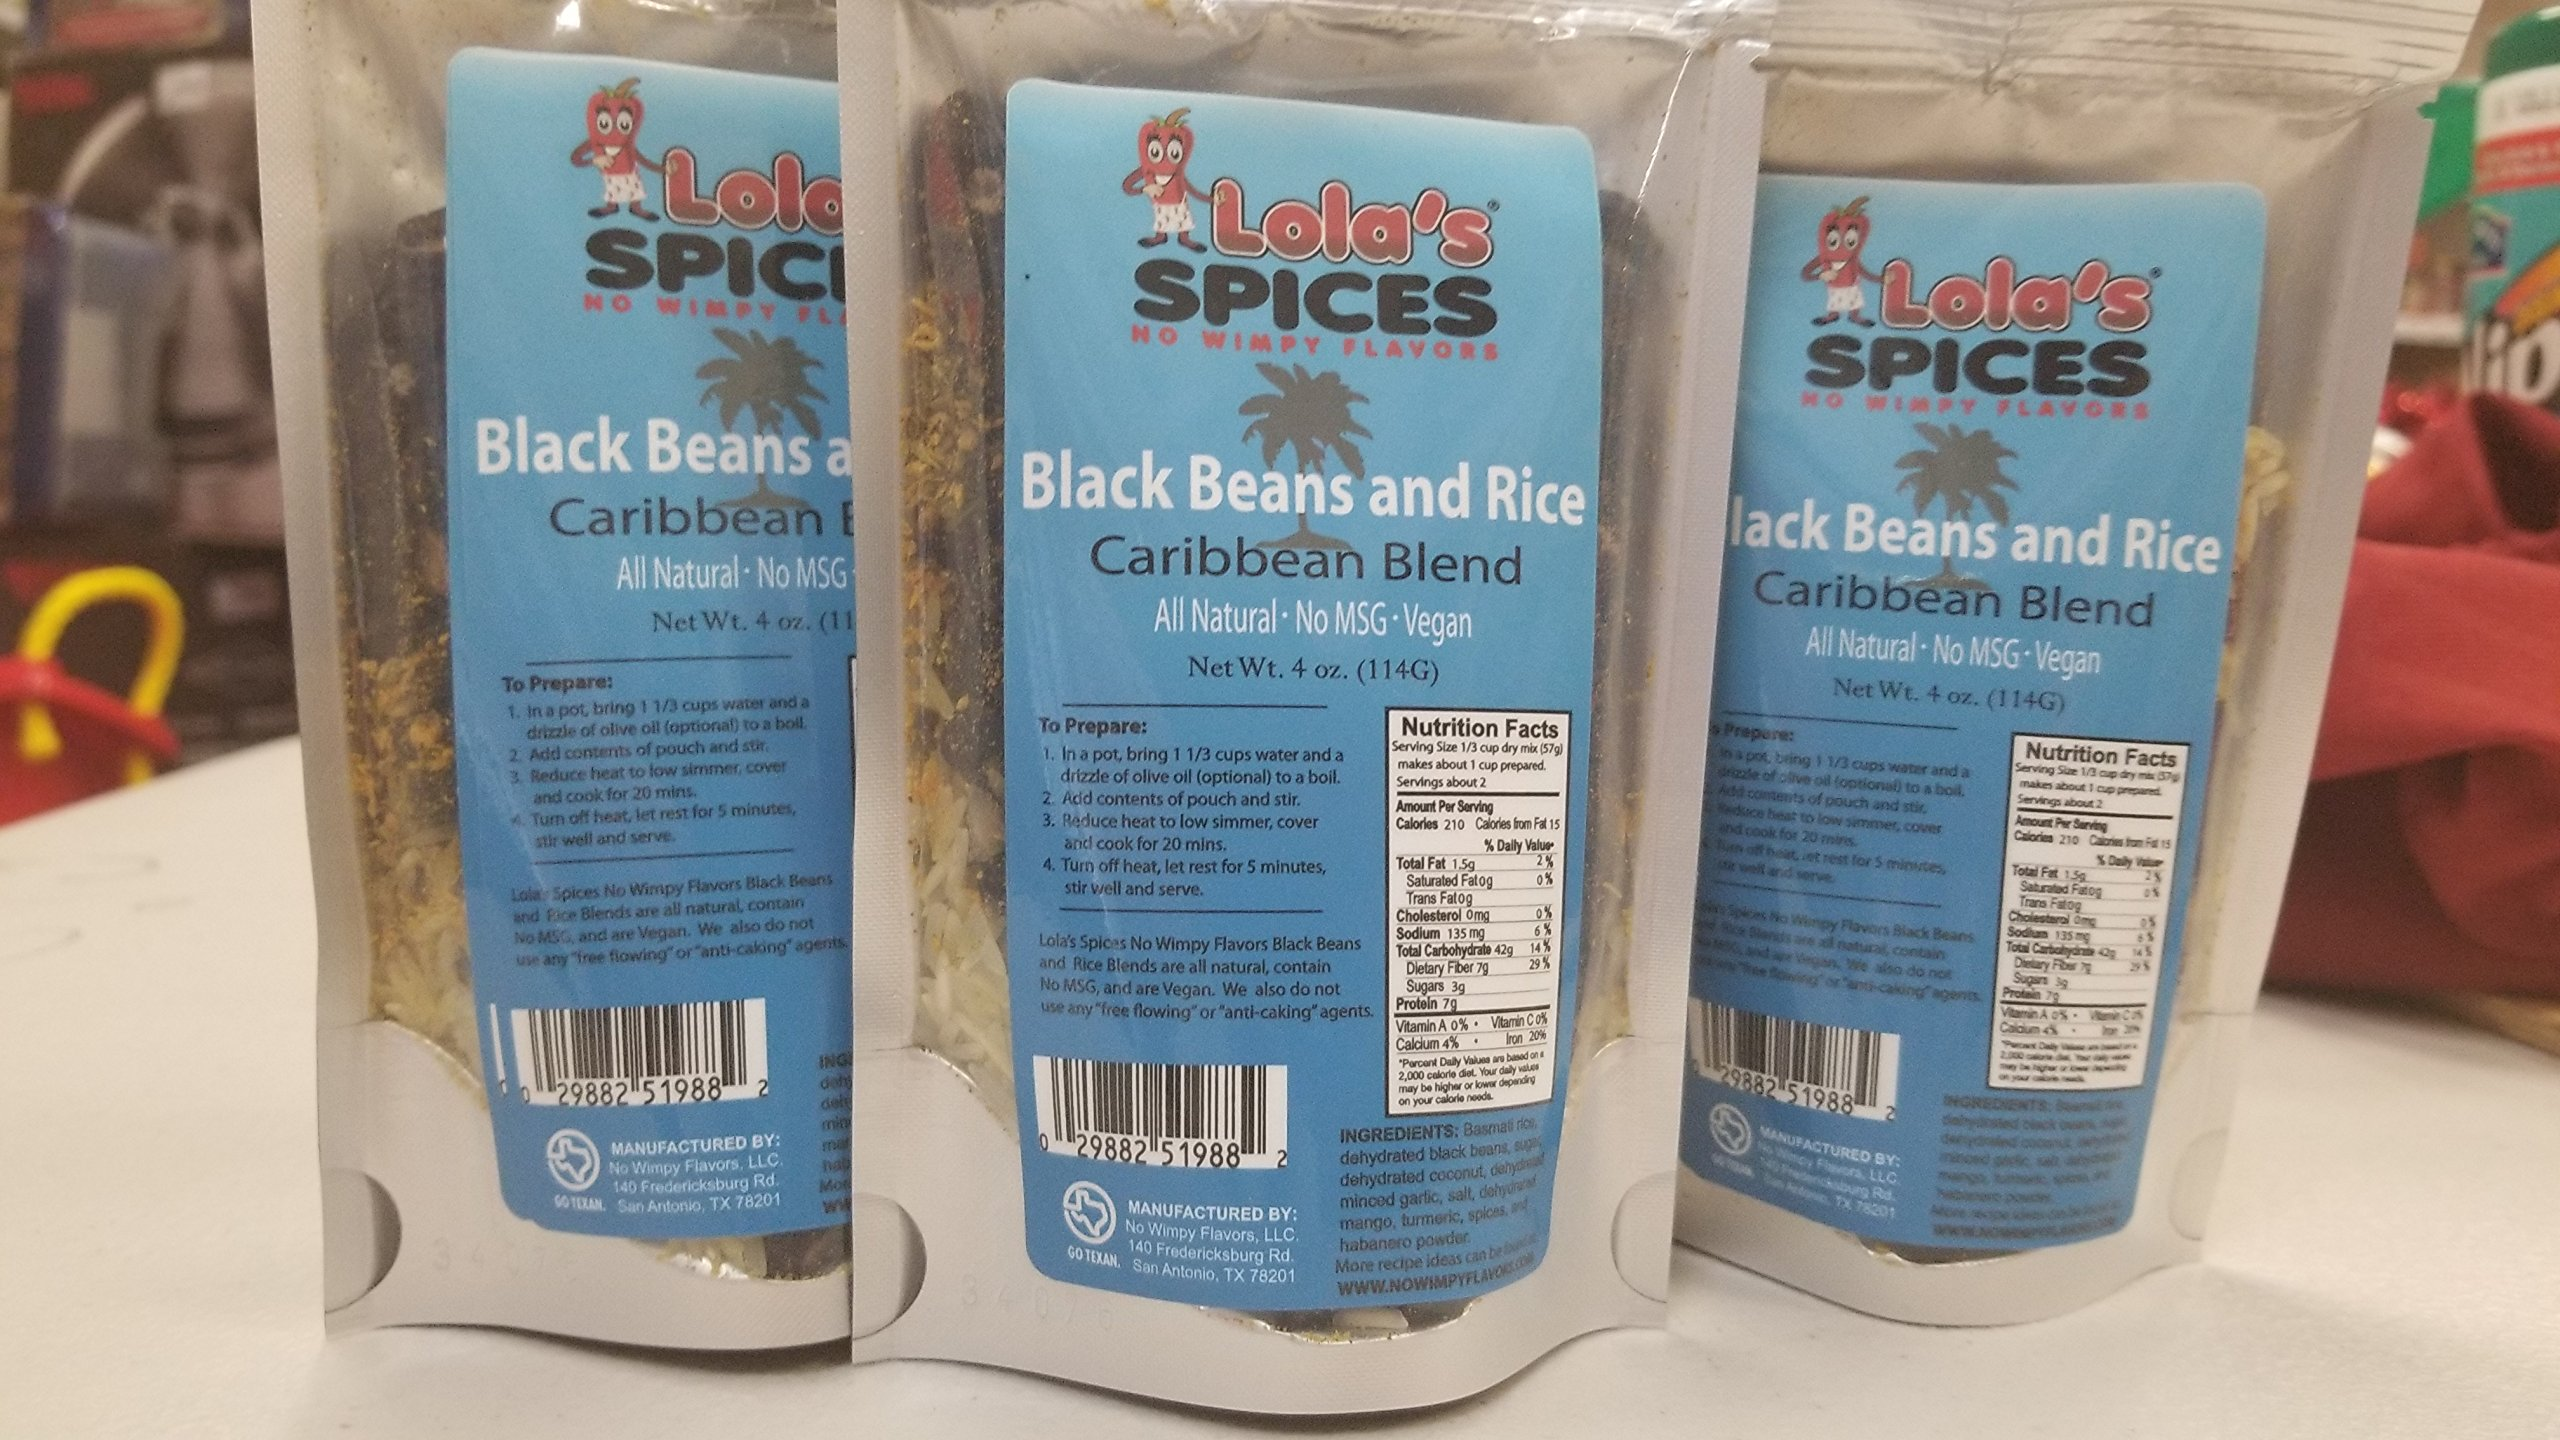 Lola's Spices Caribbean Black Beans and Rice (6 Units)